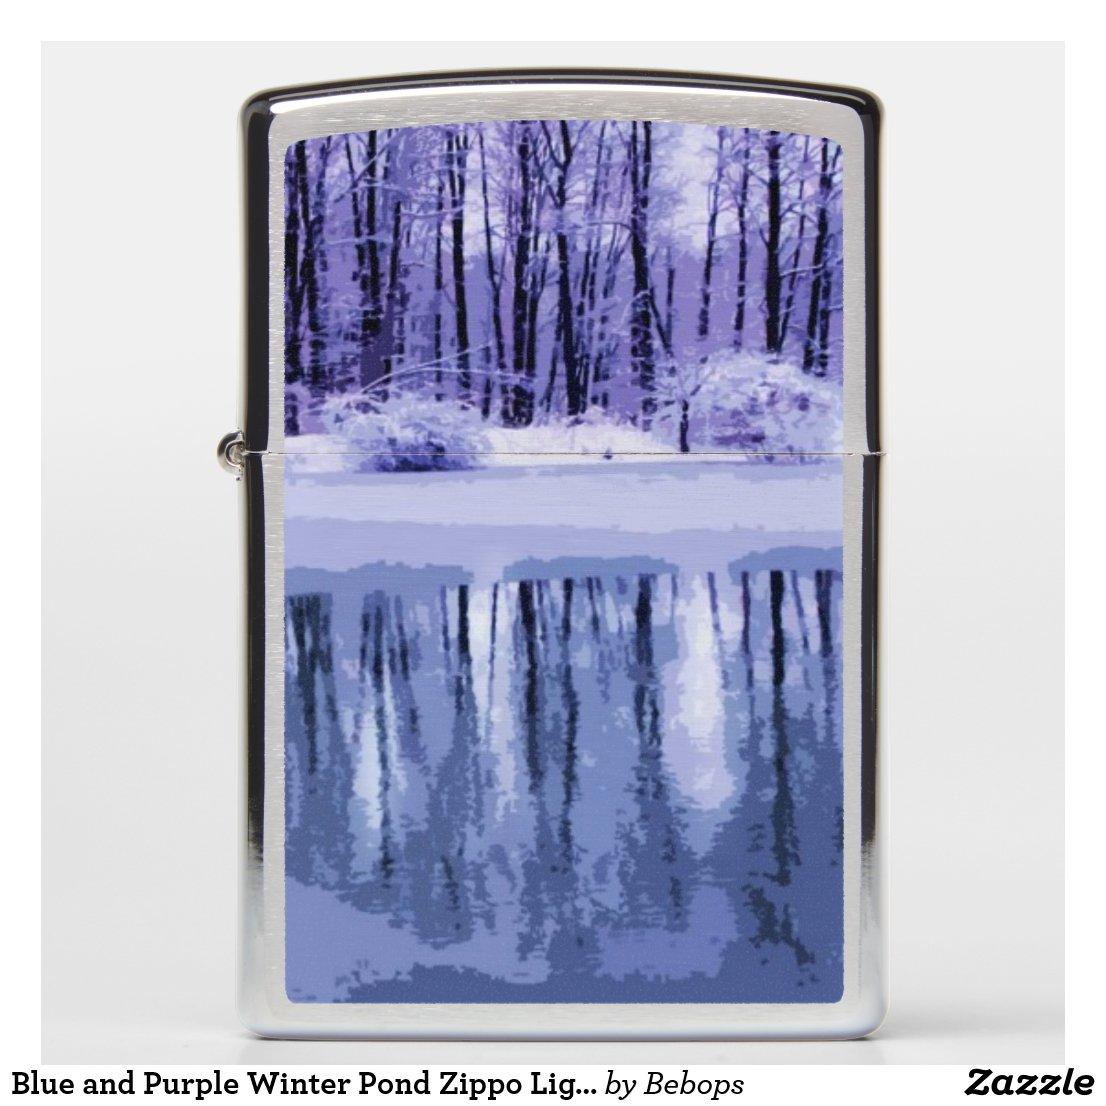 Blue and Purple Winter Pond Zippo Lighter